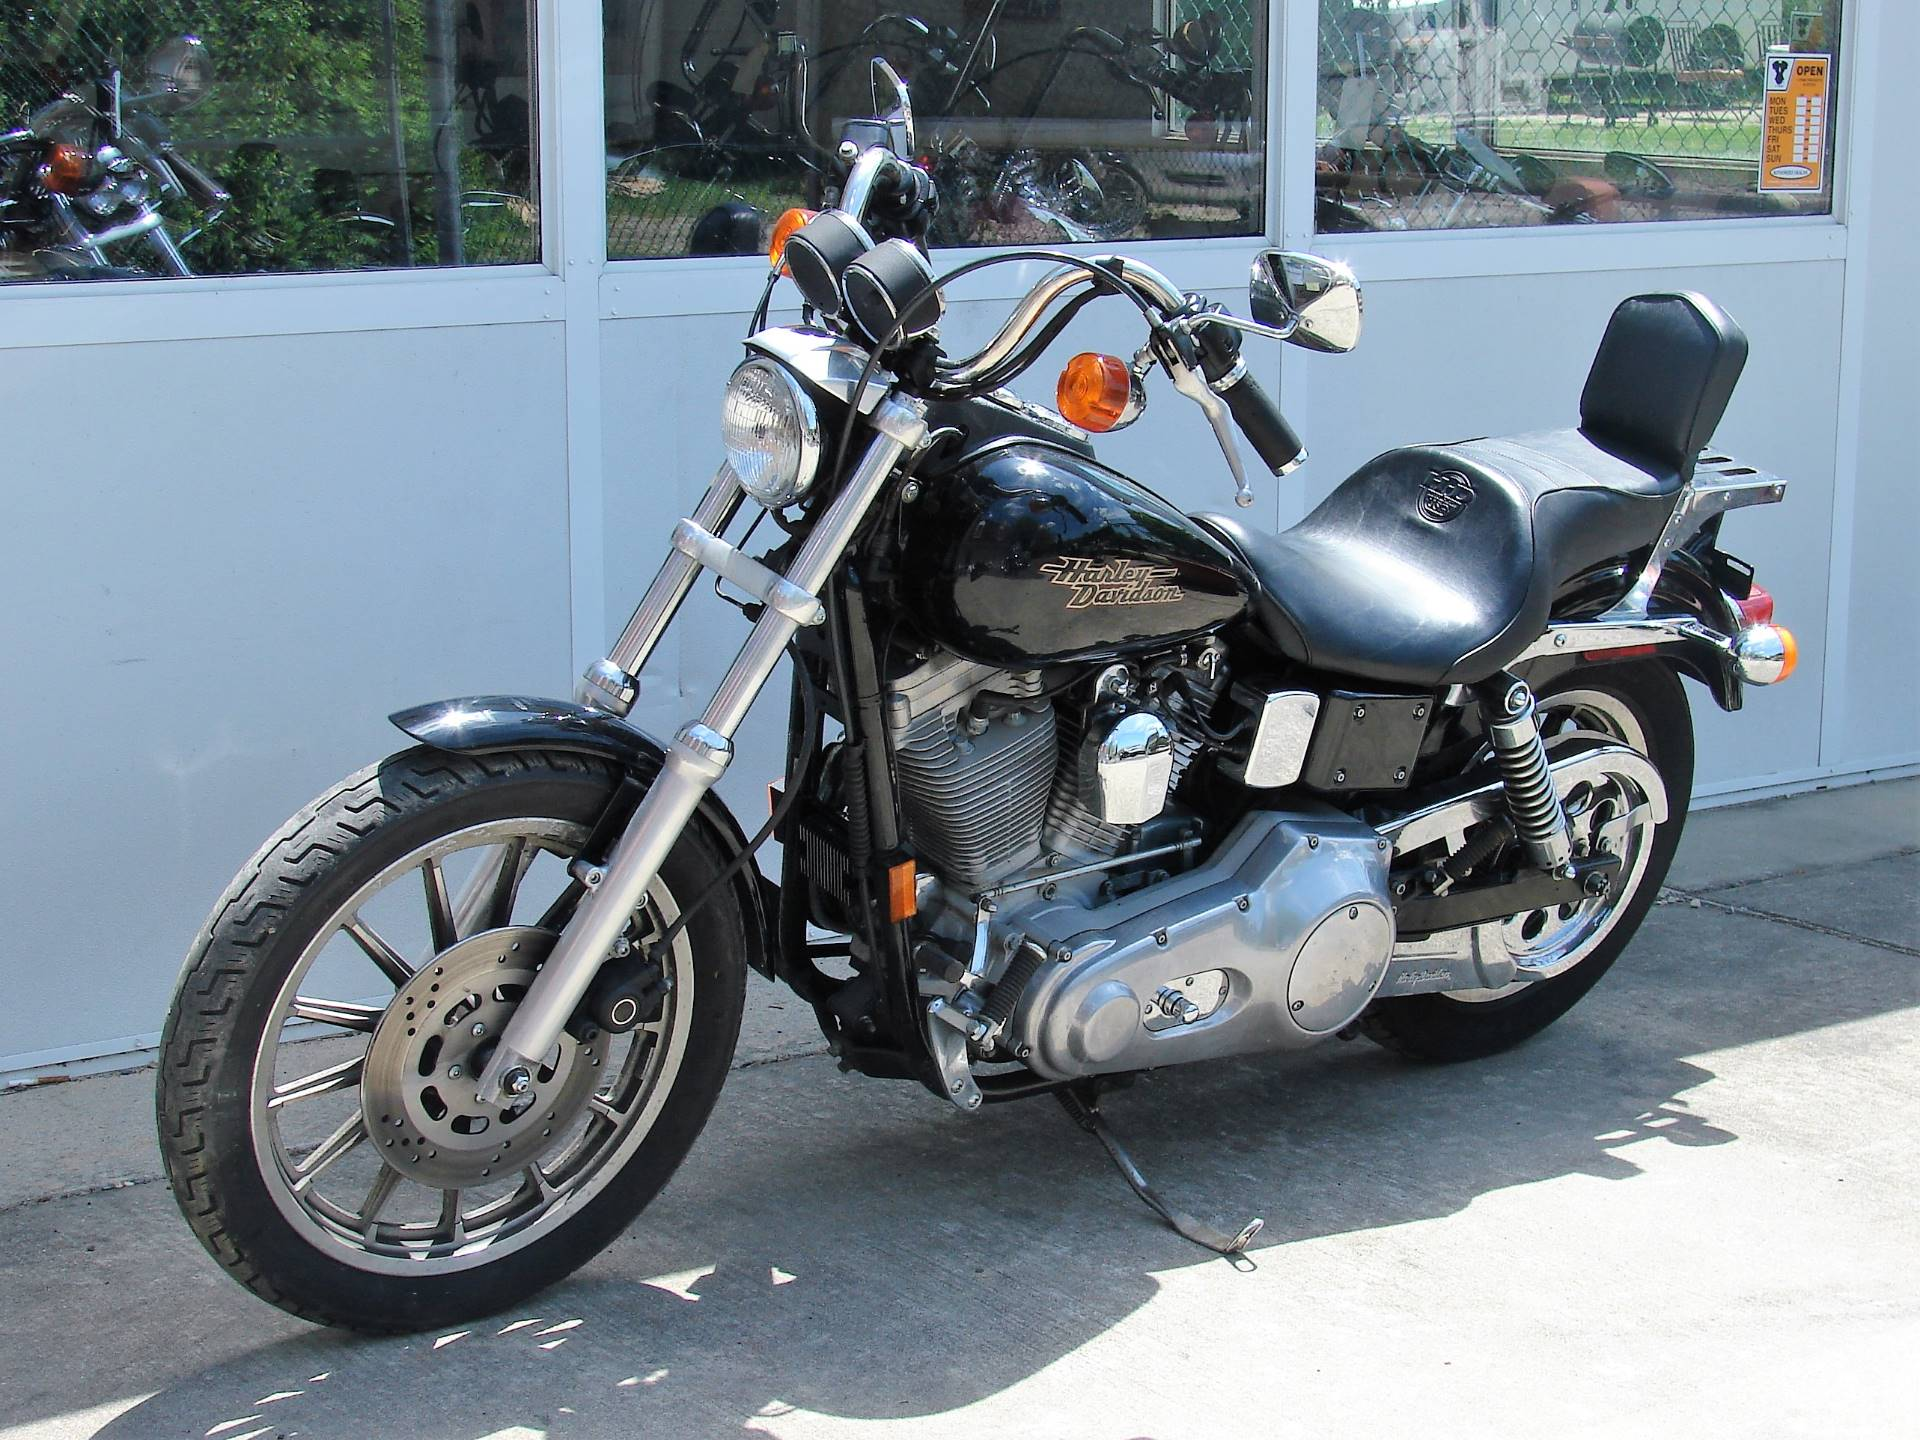 1998 Harley-Davidson Dyna Super Glide  (Black)  w/ Low Miles! in Williamstown, New Jersey